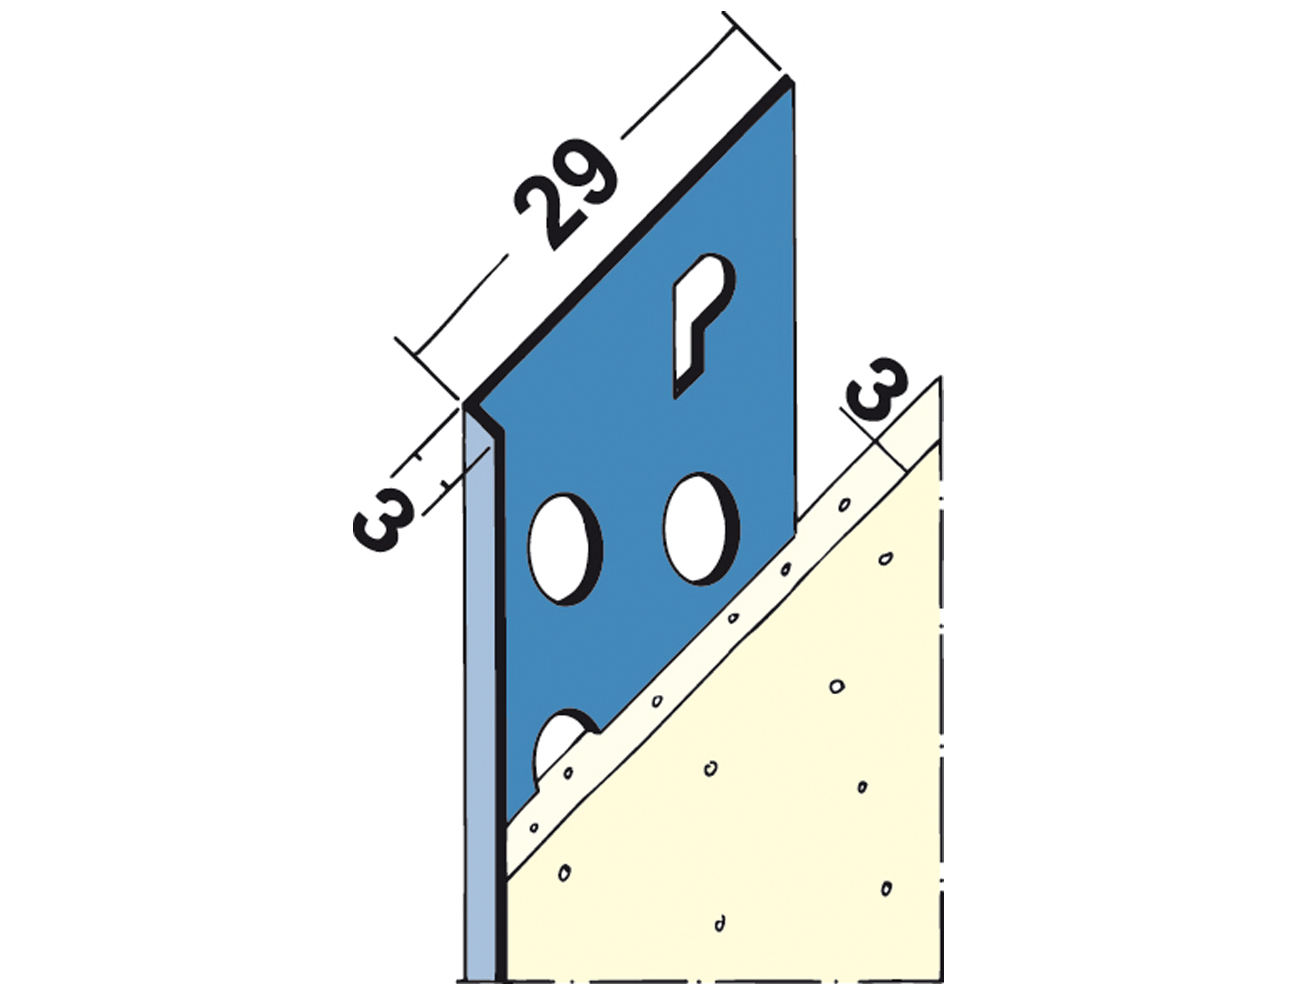 Stainless Steel Corner Bead : Thin coat and edging beads building profiles systems ltd